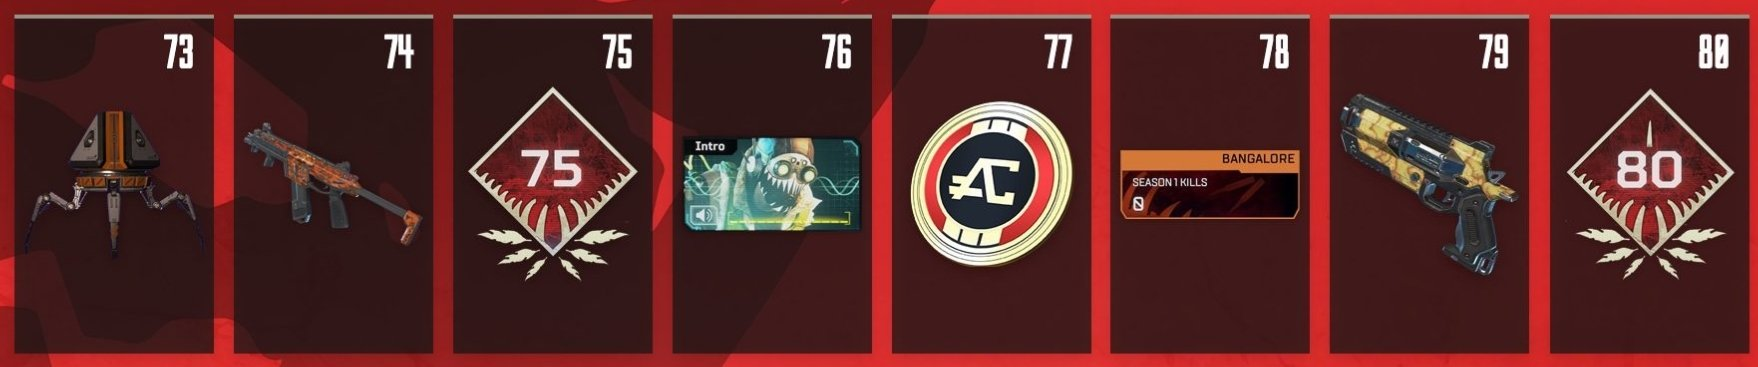 Apex Legends Battle Pass Rewards Levels 73-80